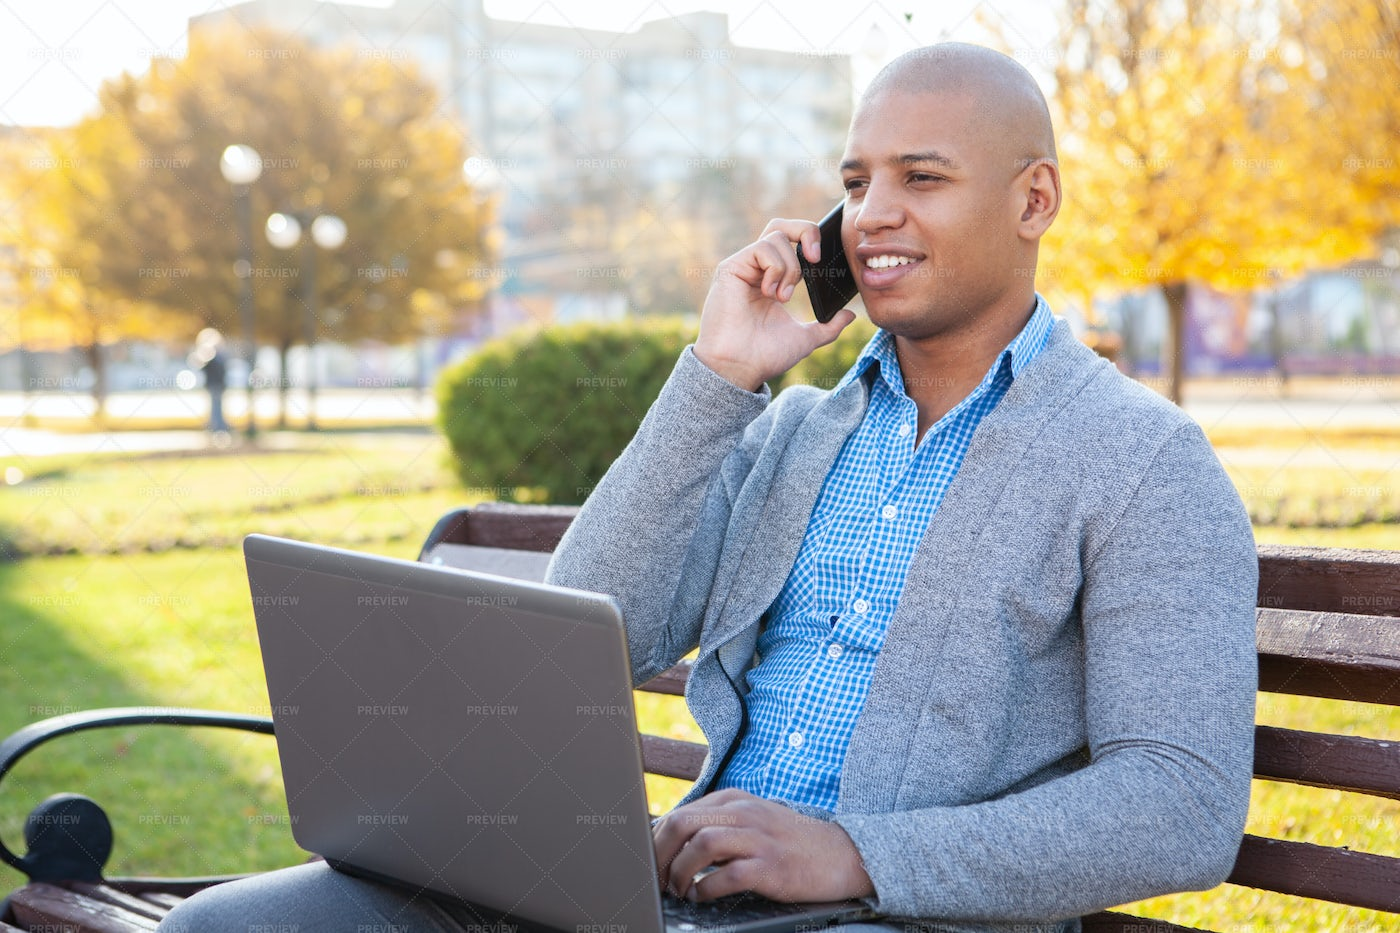 Taking Business Call Outside: Stock Photos